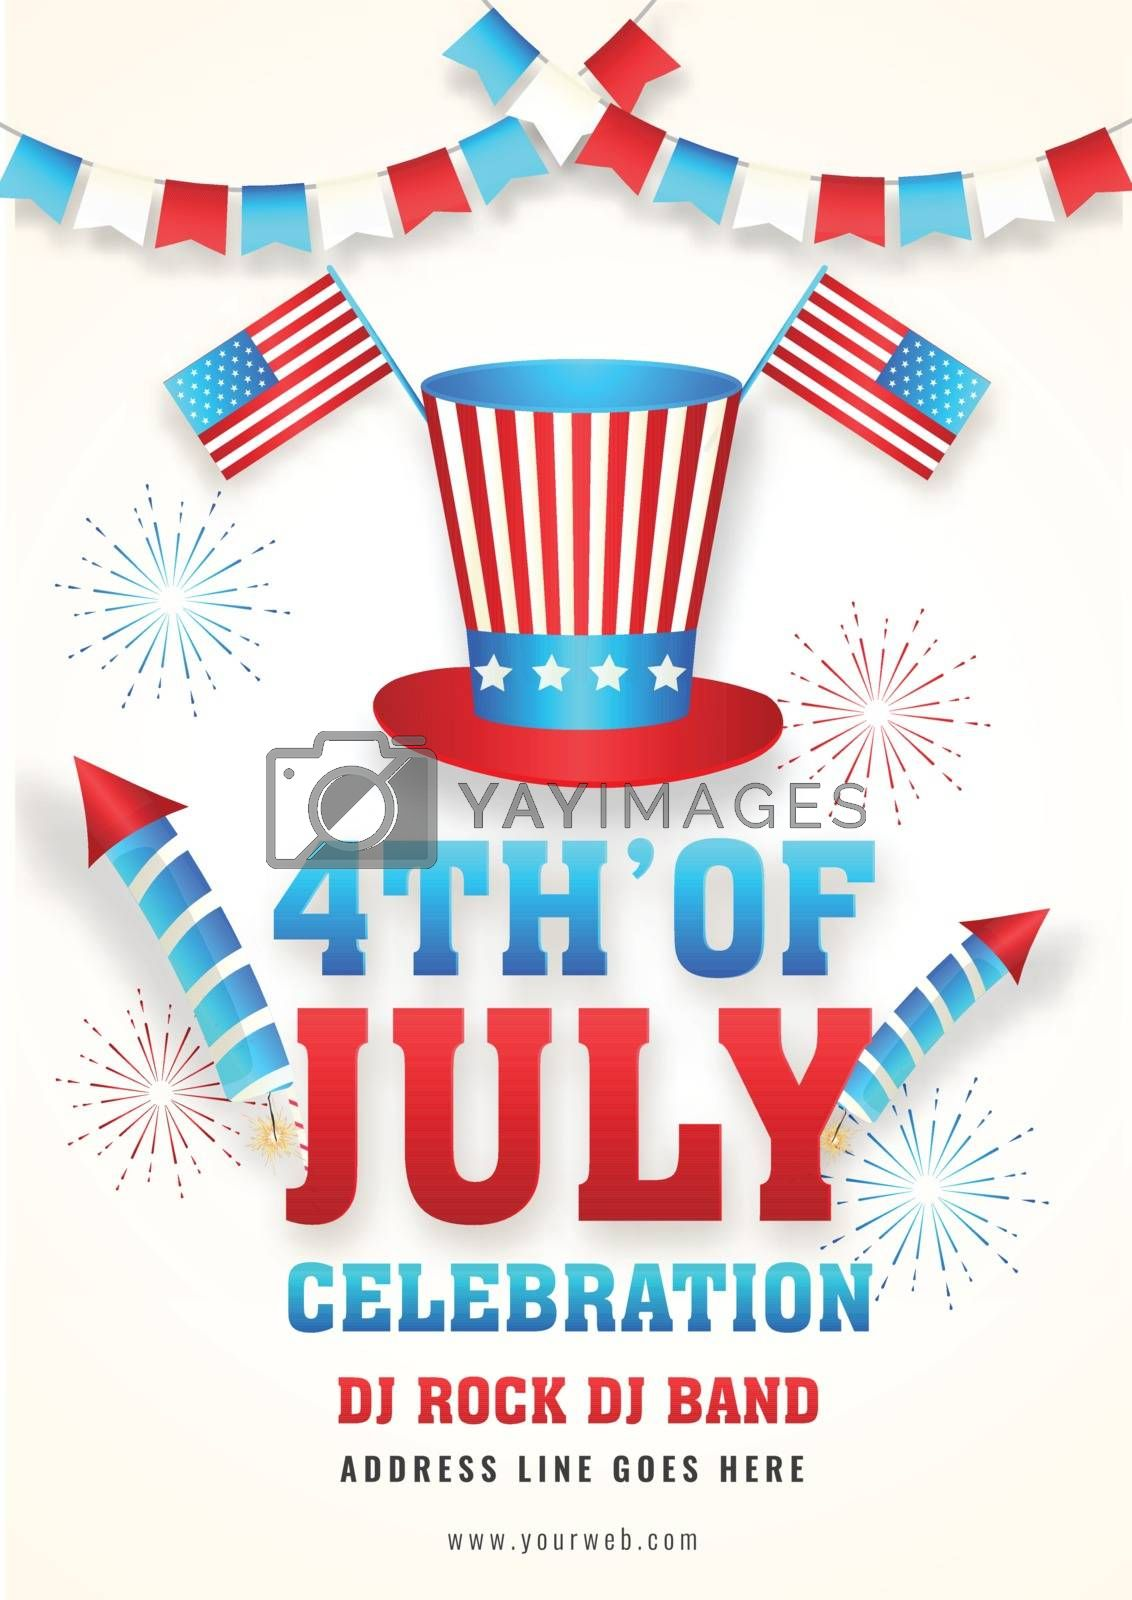 4th Of July Celebration template or flyer design with illustration of uncle sam hat and American Flags.